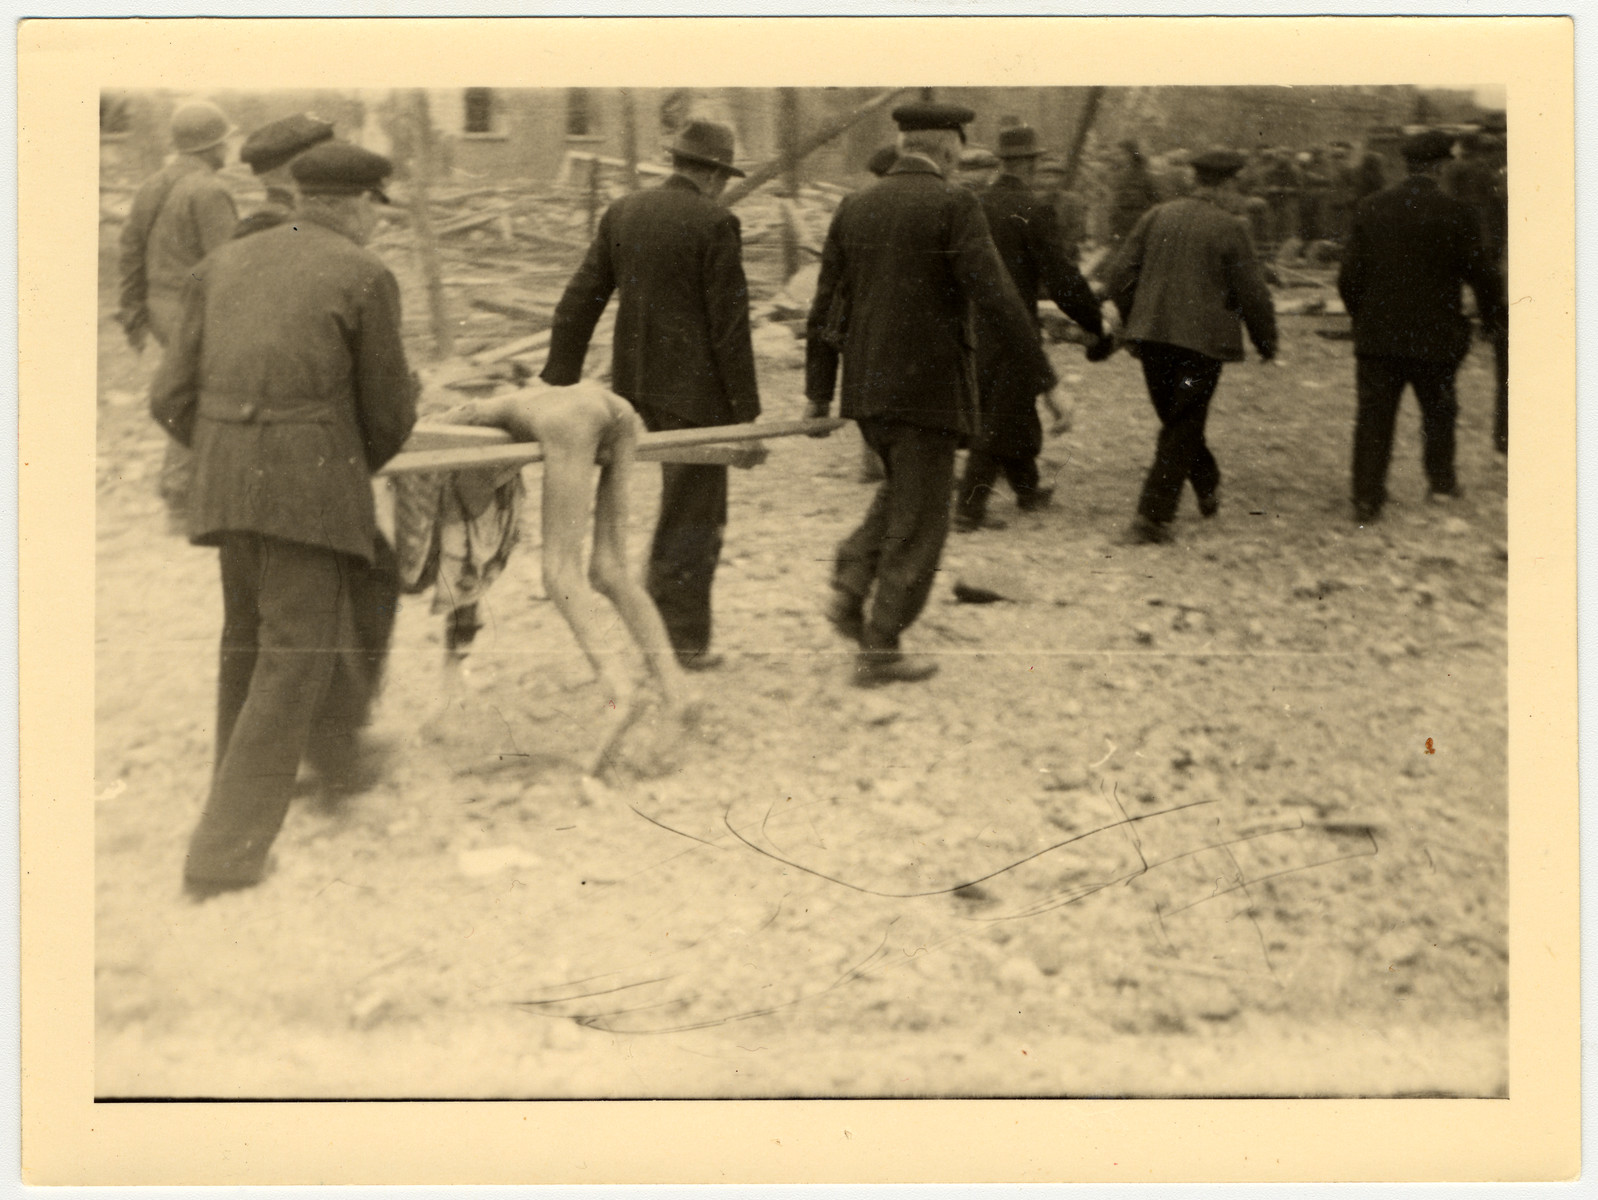 German civilians carry a corpse, using pieces of wood as a stretcher, from the Nordhausen concentration camp for burial.